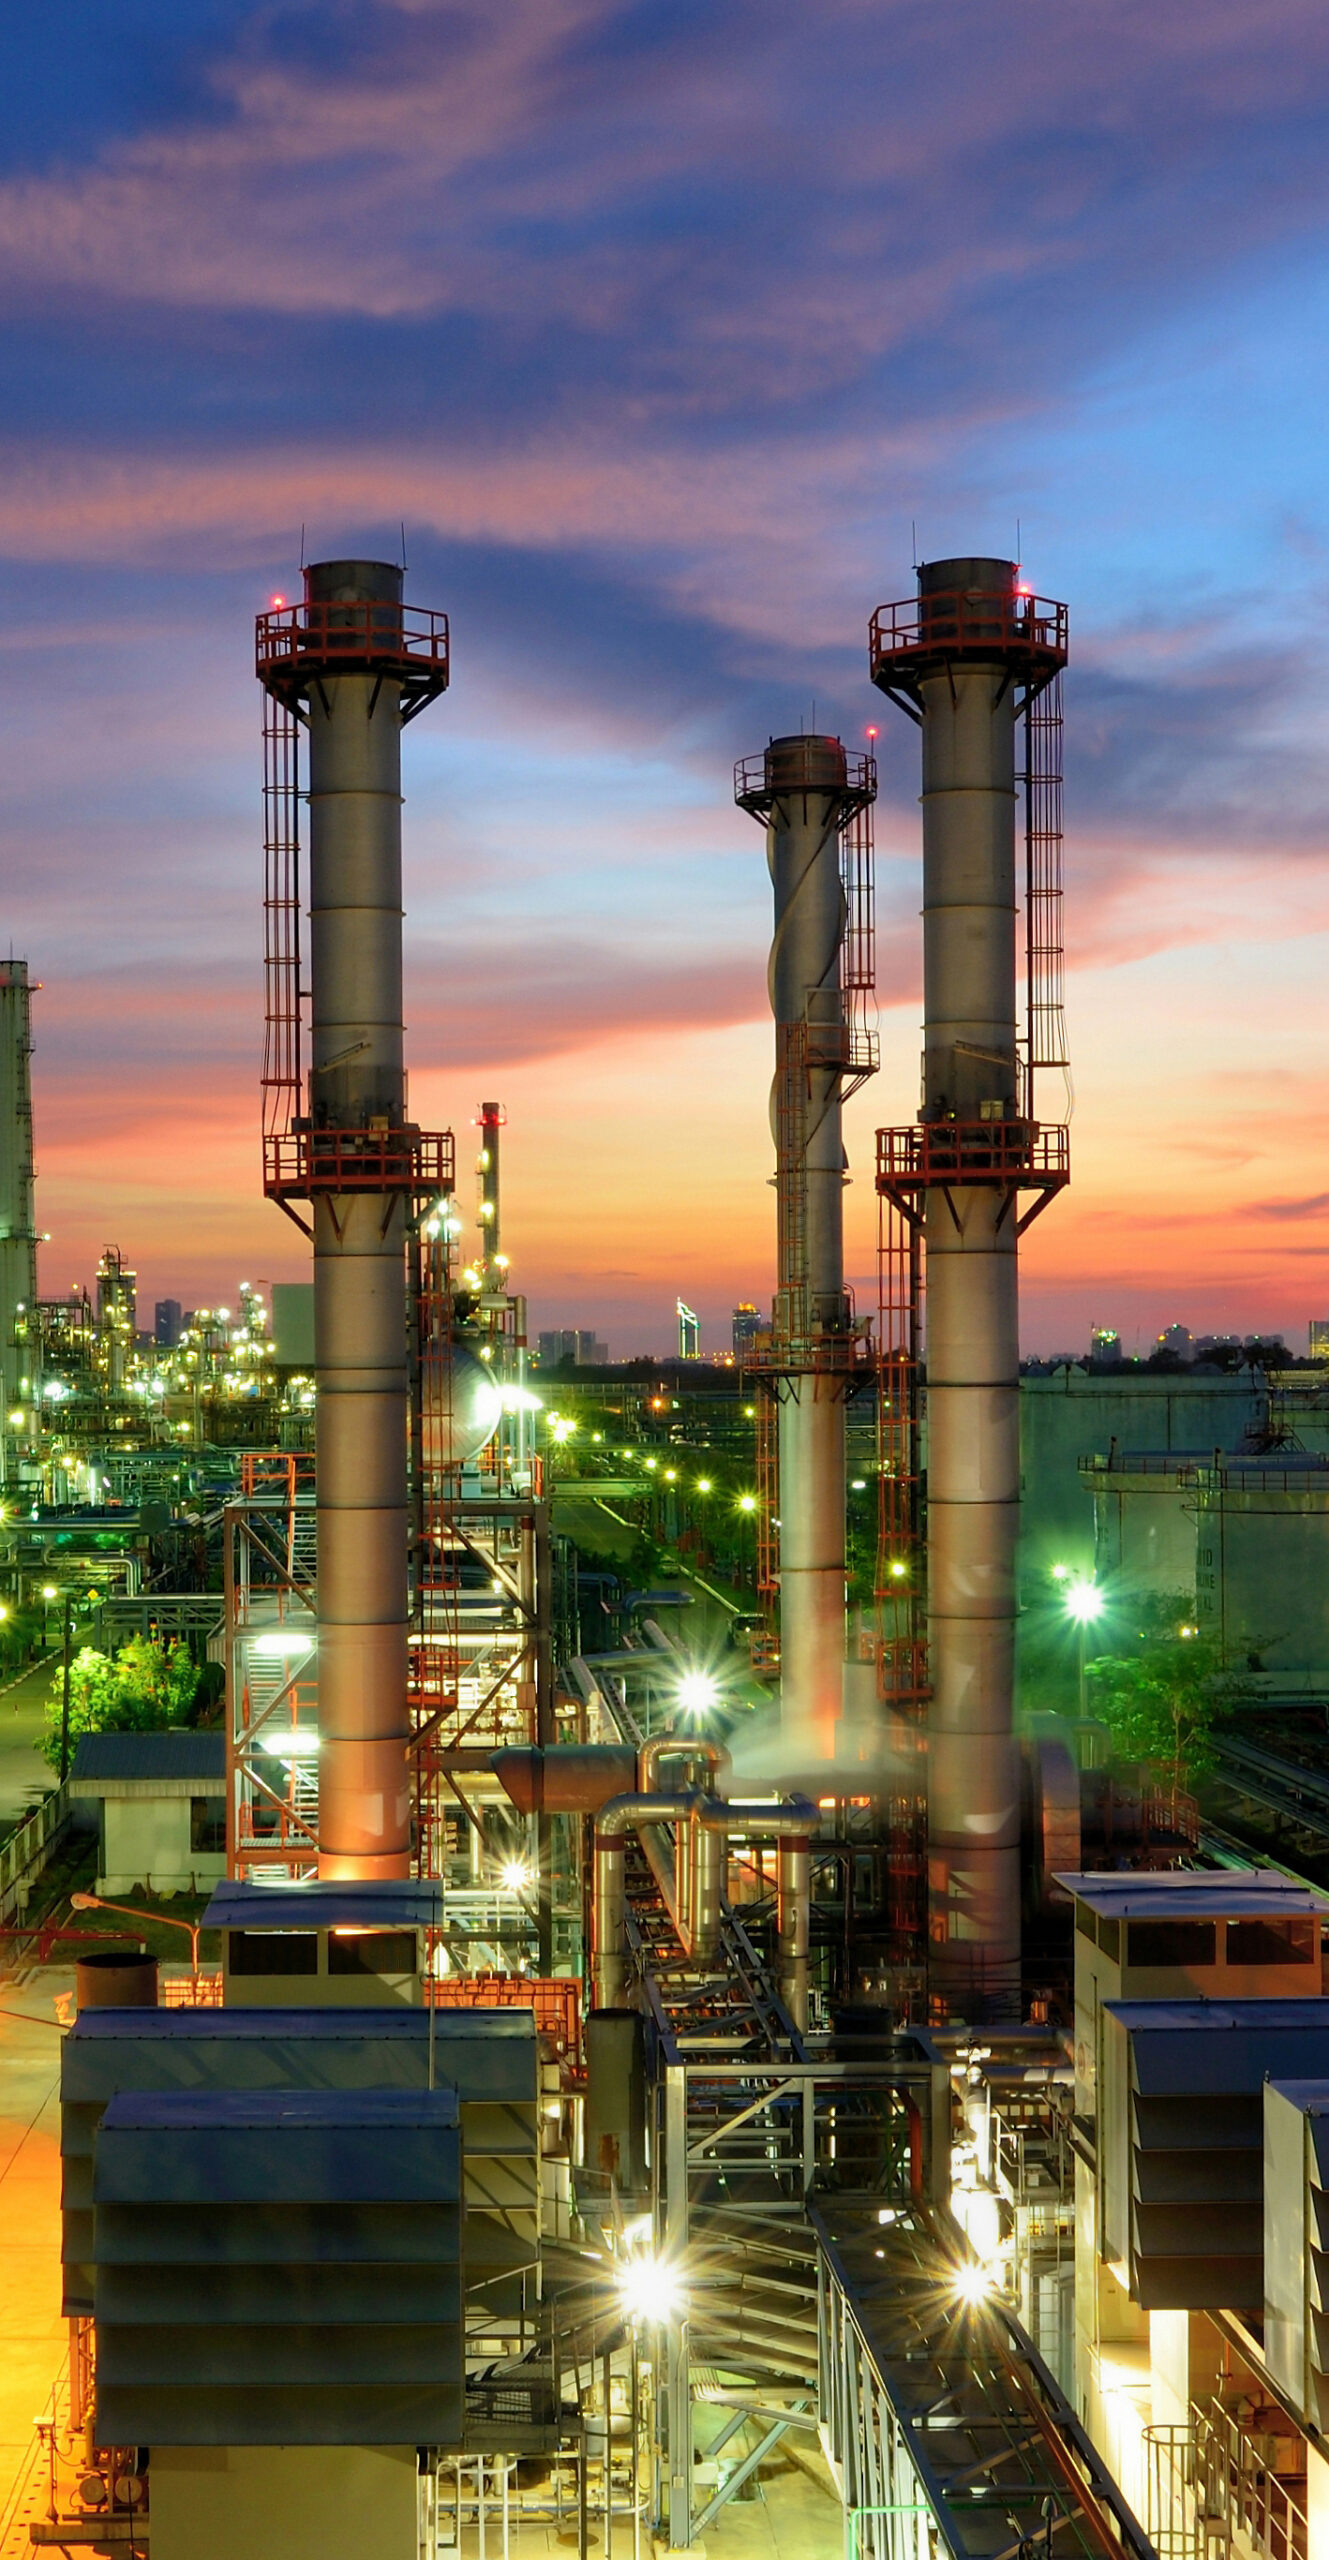 Oil refinery plant at sunset, The night view of petroleum and petrochemical factory with distillation column, drum and pipeline. Gas, diesel and chemical business industry is important for economy.